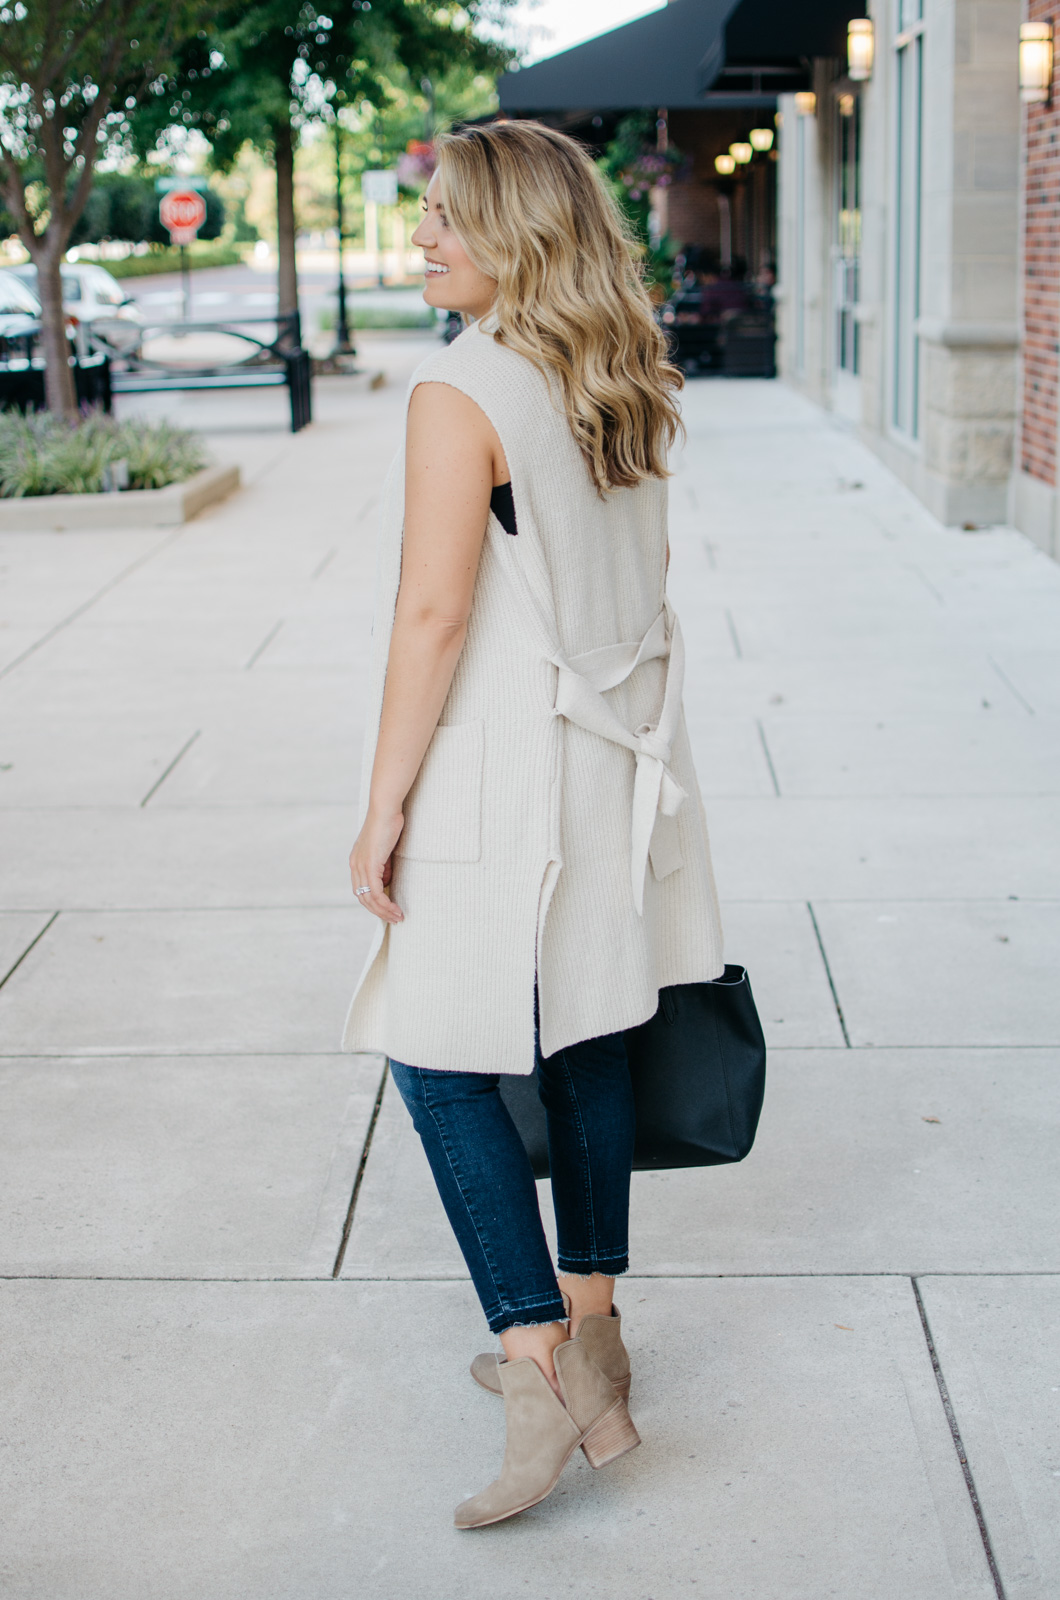 two ways to wear a long sweater vest - sleeveless coatigan outfit | Want to know how to wear a sleeveless sweater? I'm sharing two outfit ideas in today's post! bylaurenm.com